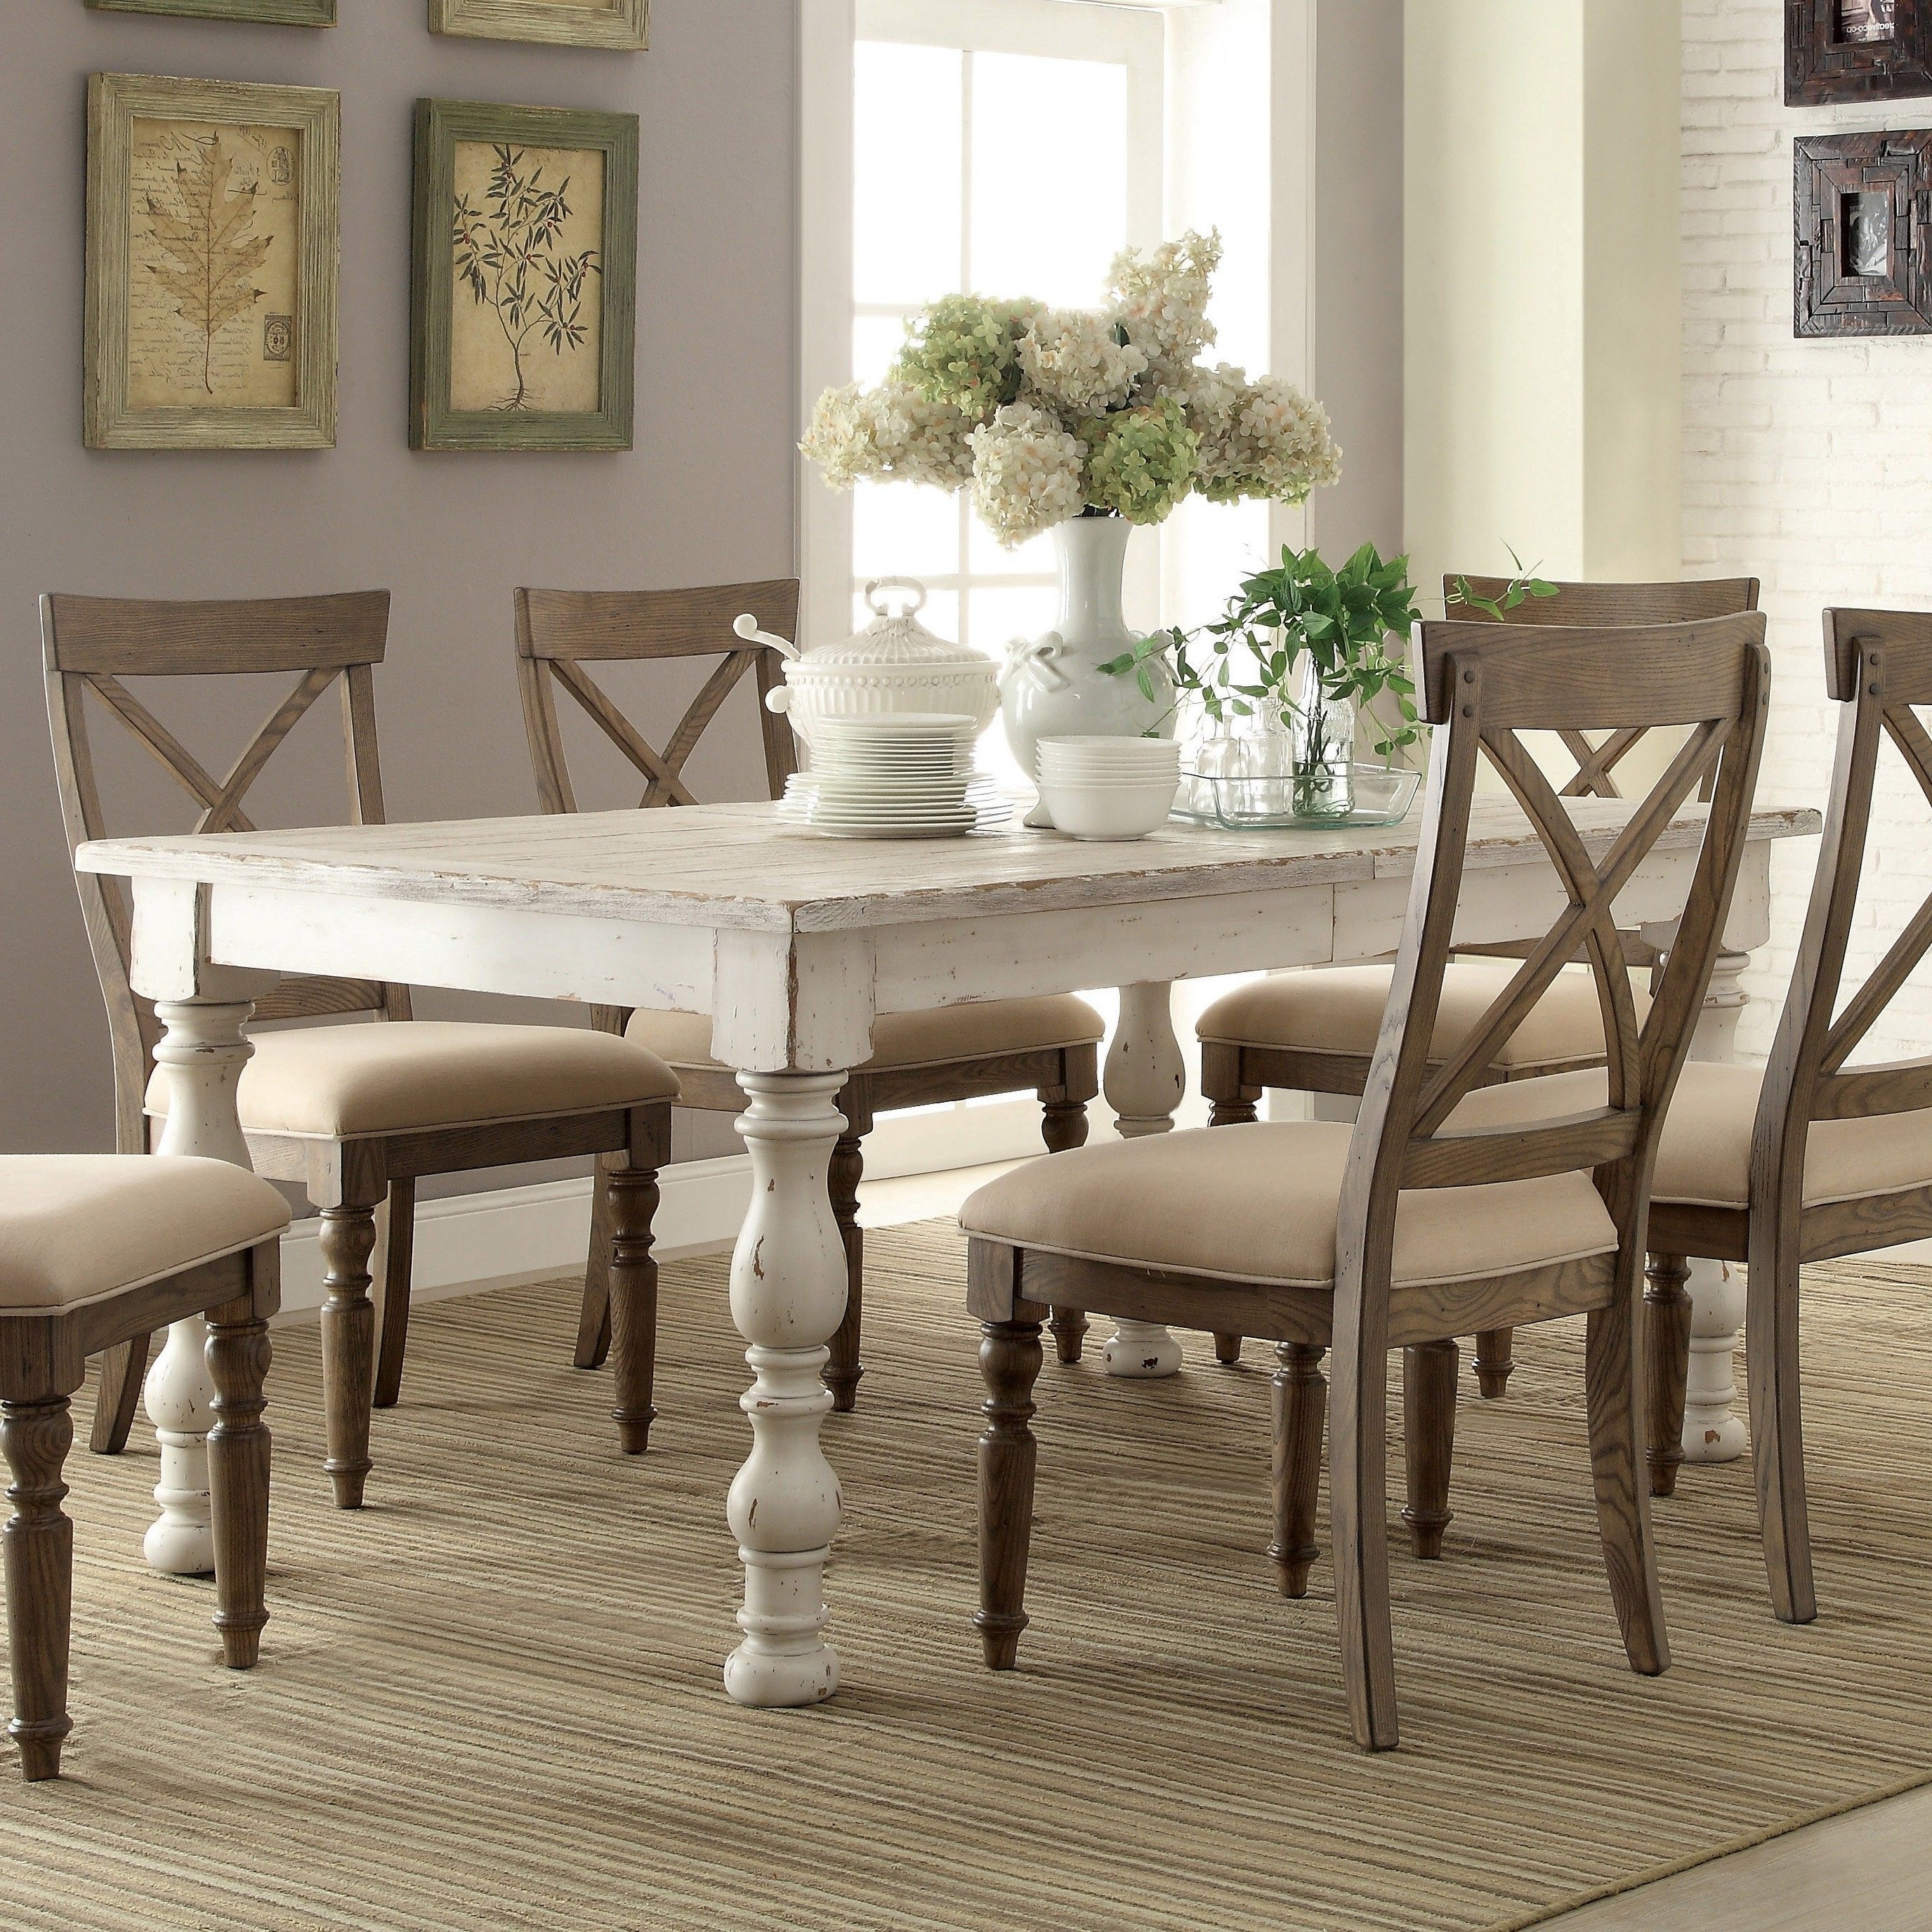 Aberdeen Wood Rectangular Dining Table Only In Weathered Worn White Intended For Well Known Dining Room Chairs Only (Gallery 11 of 25)